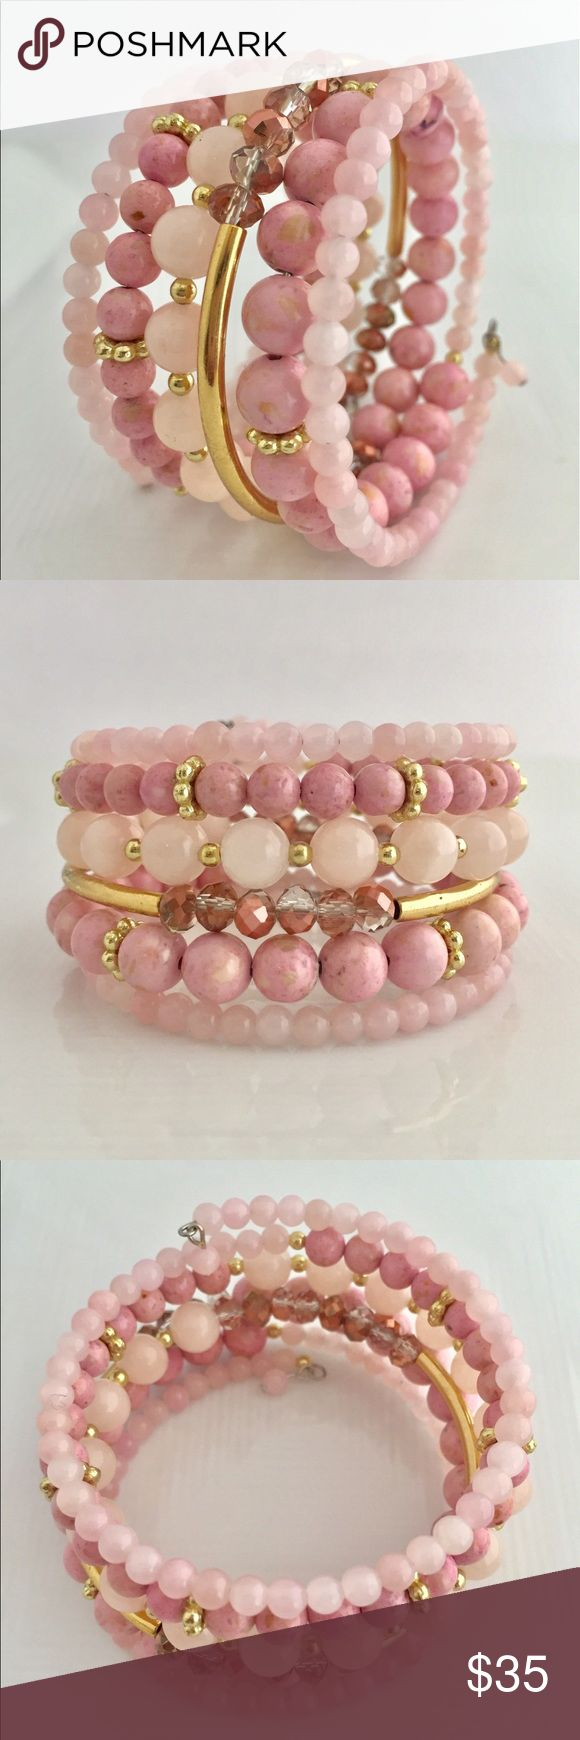 241 Best Memory Wire Bracelets Images On Pinterest